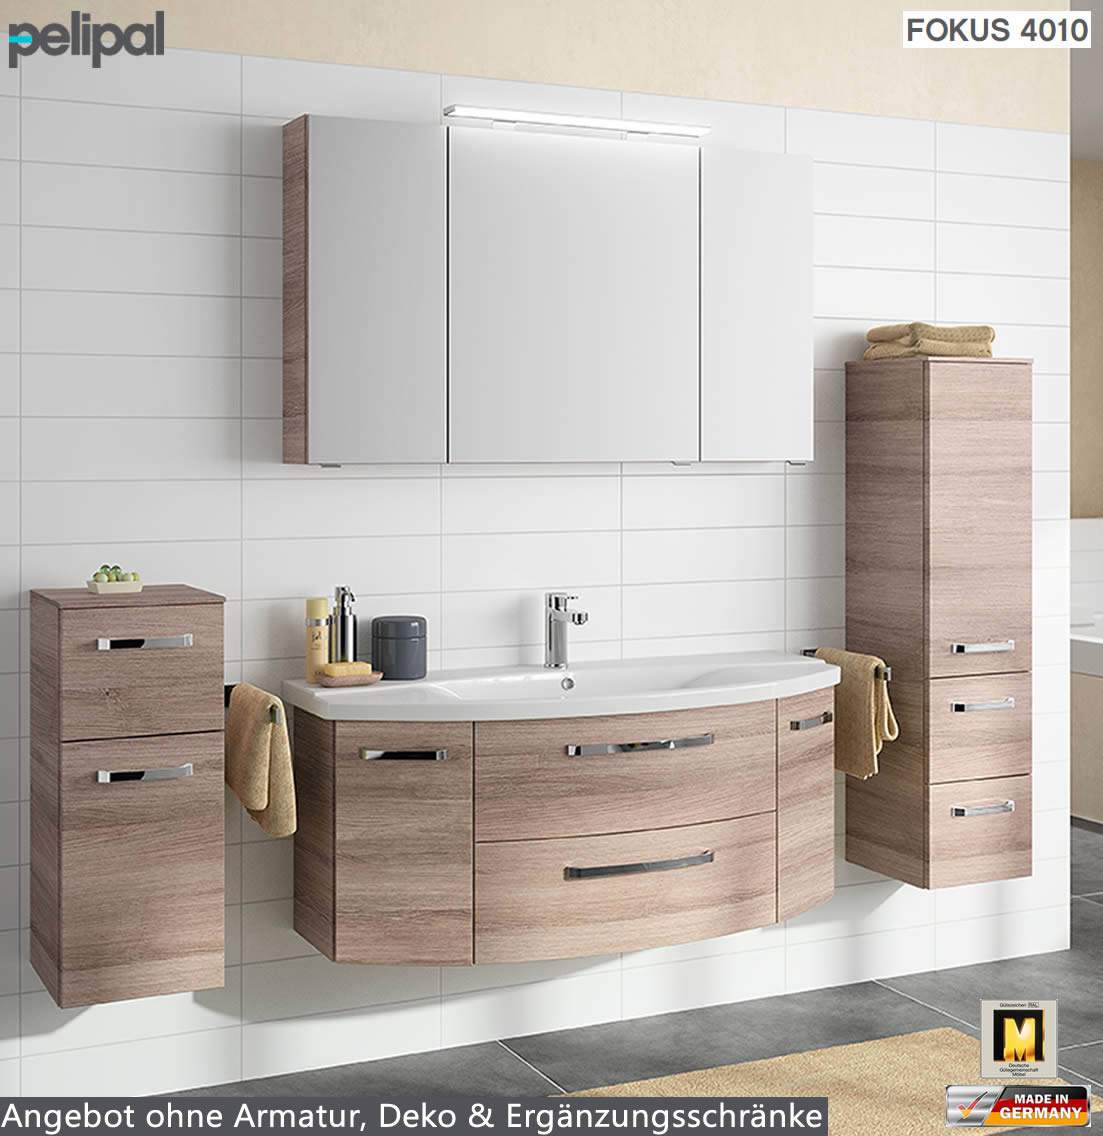 pelipal badm bel. Black Bedroom Furniture Sets. Home Design Ideas